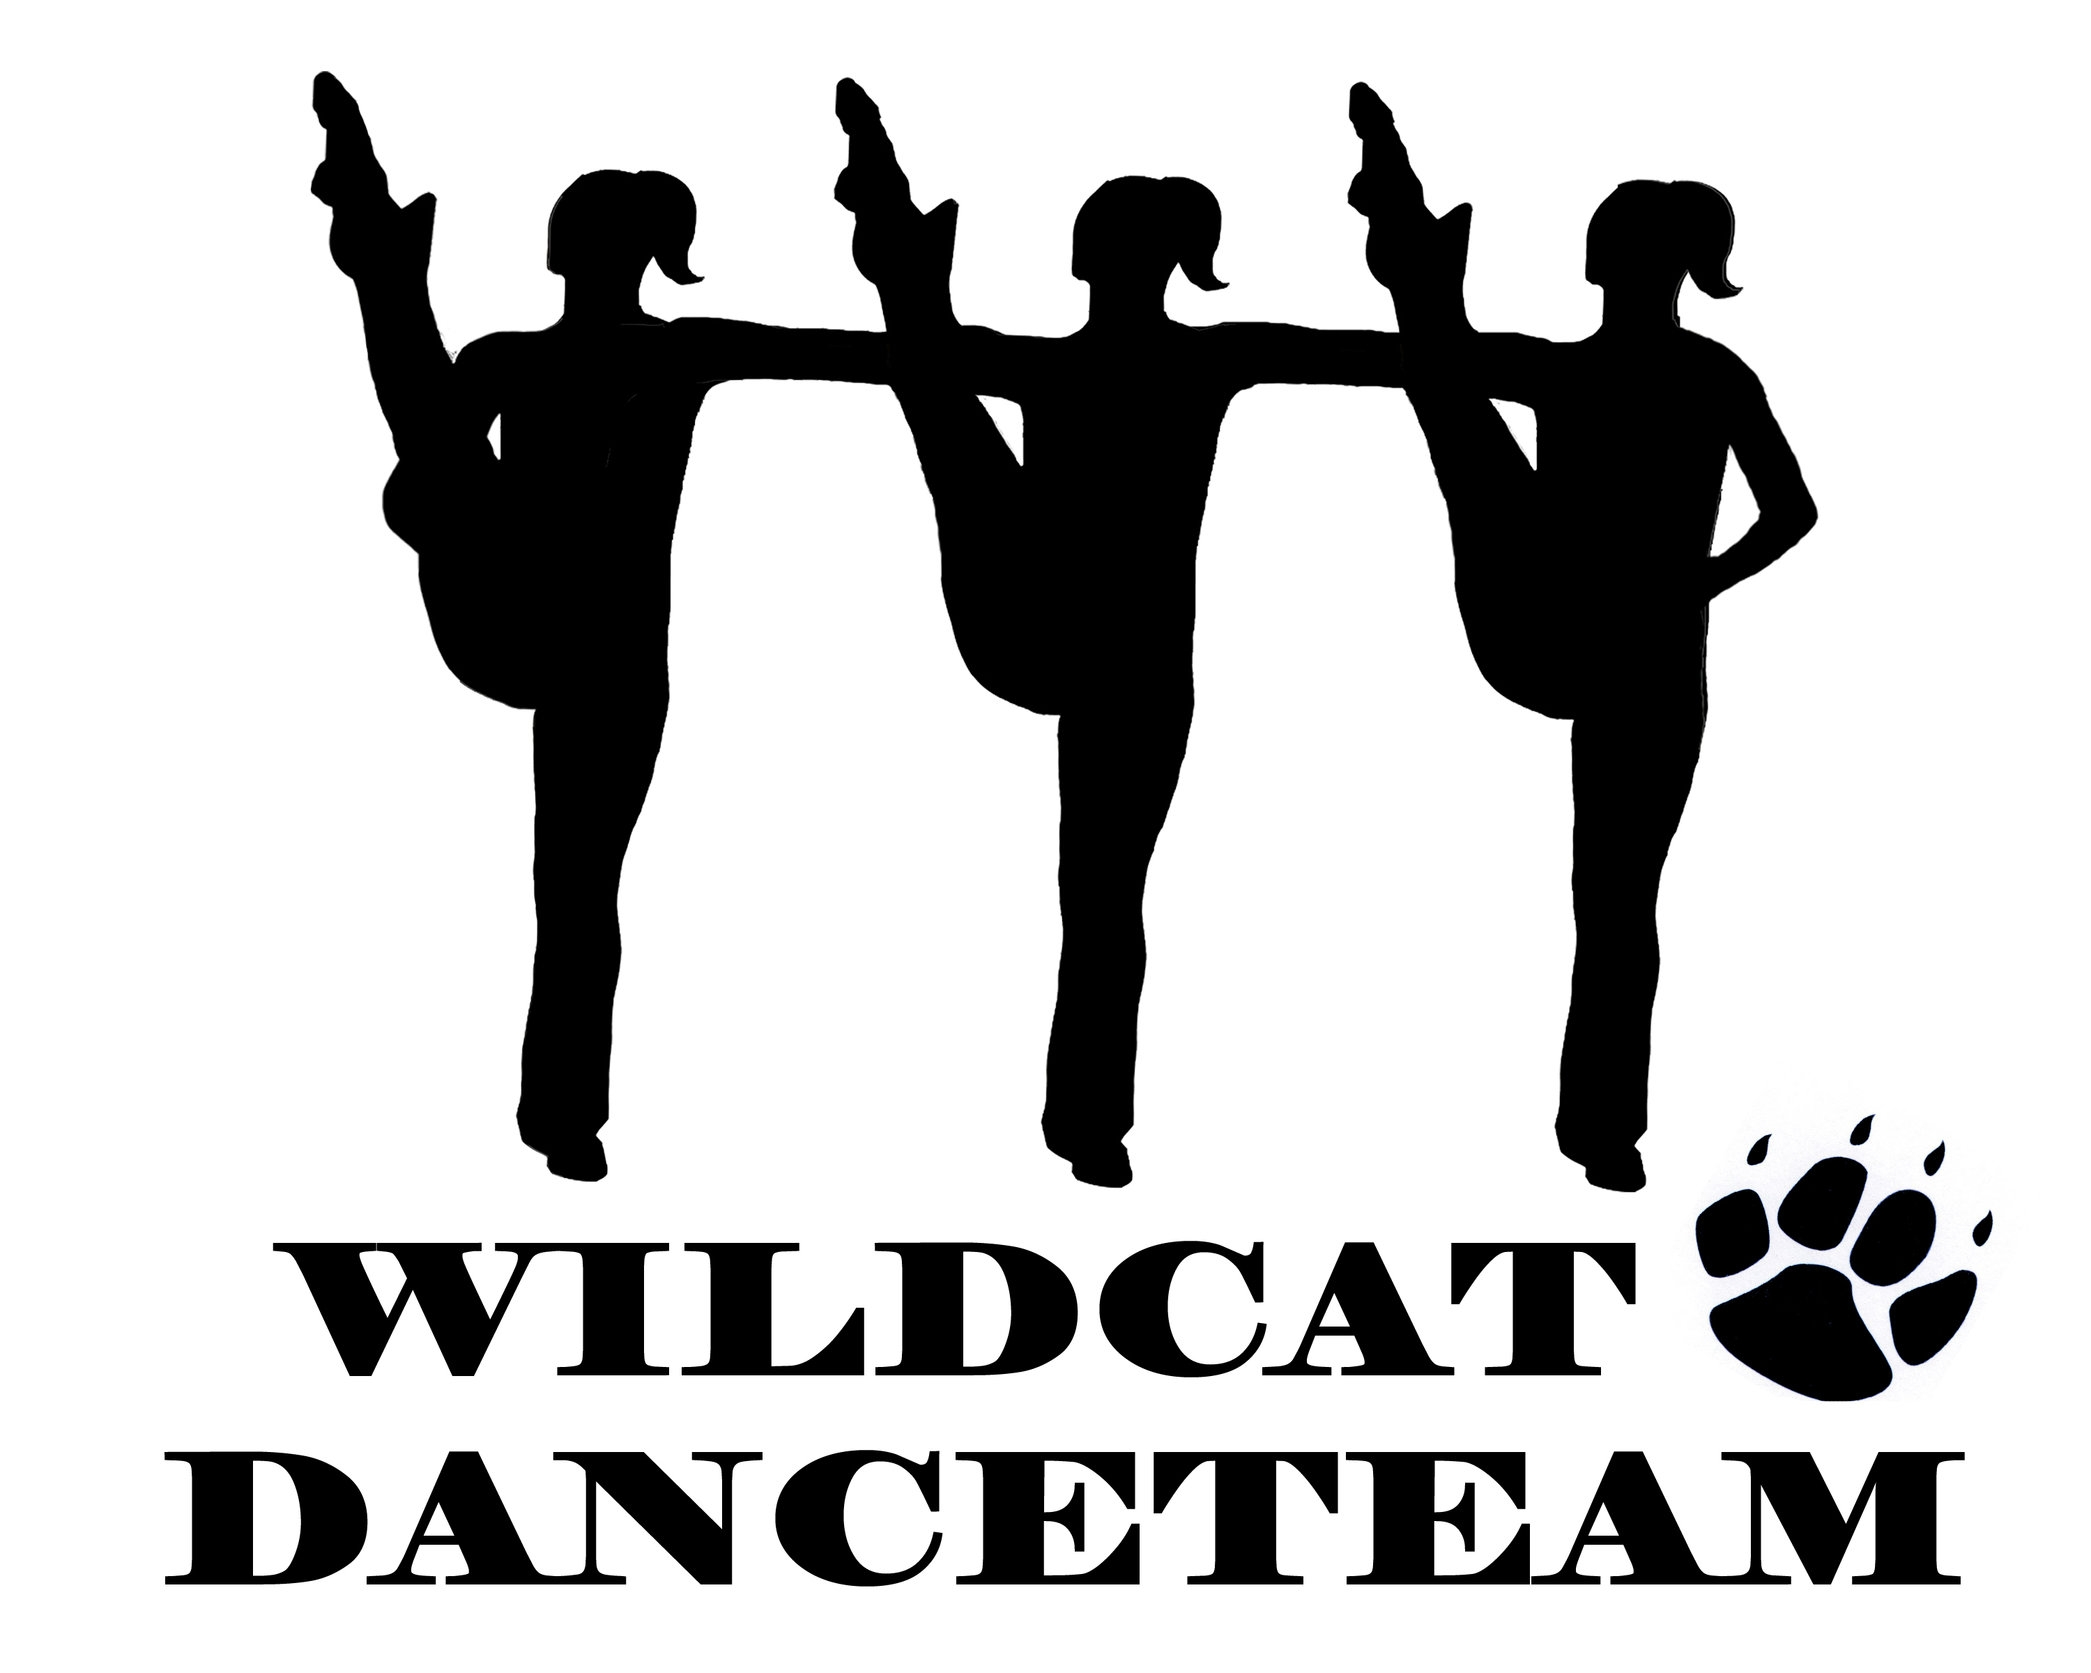 Dance Team Clip Art - Dance Team Clipart